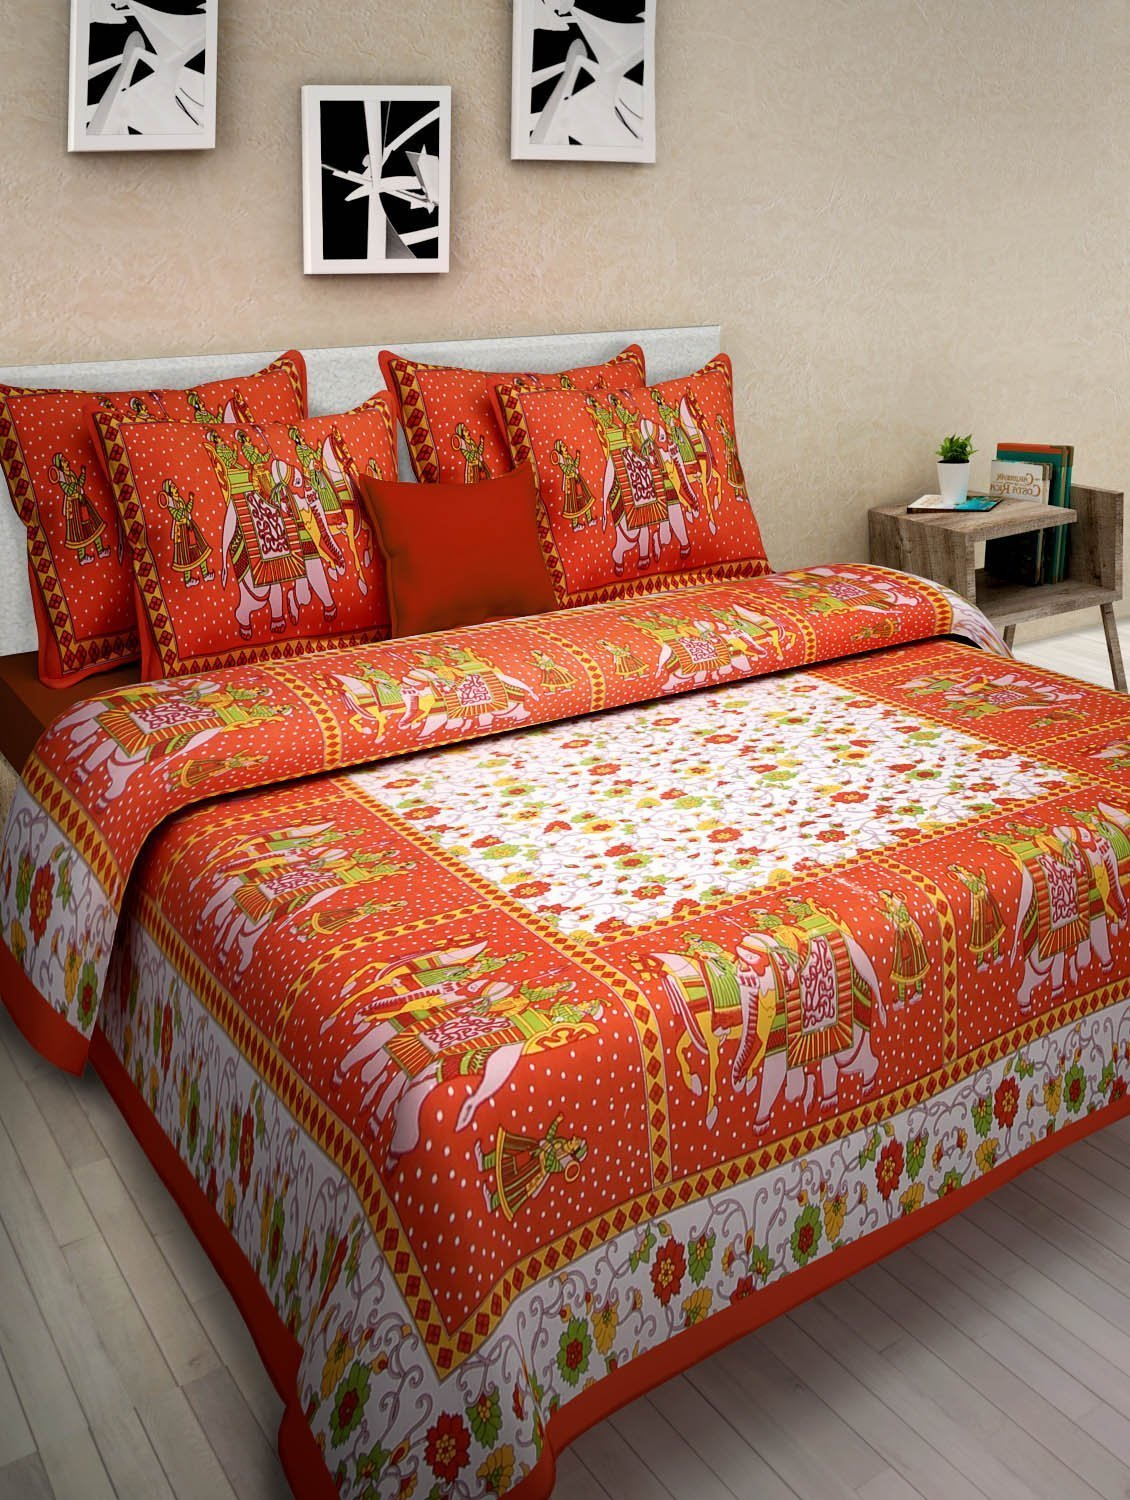 Cheap D Print Bed Sheets Find D Print Bed Sheets Deals On Line At - Orange print sheets